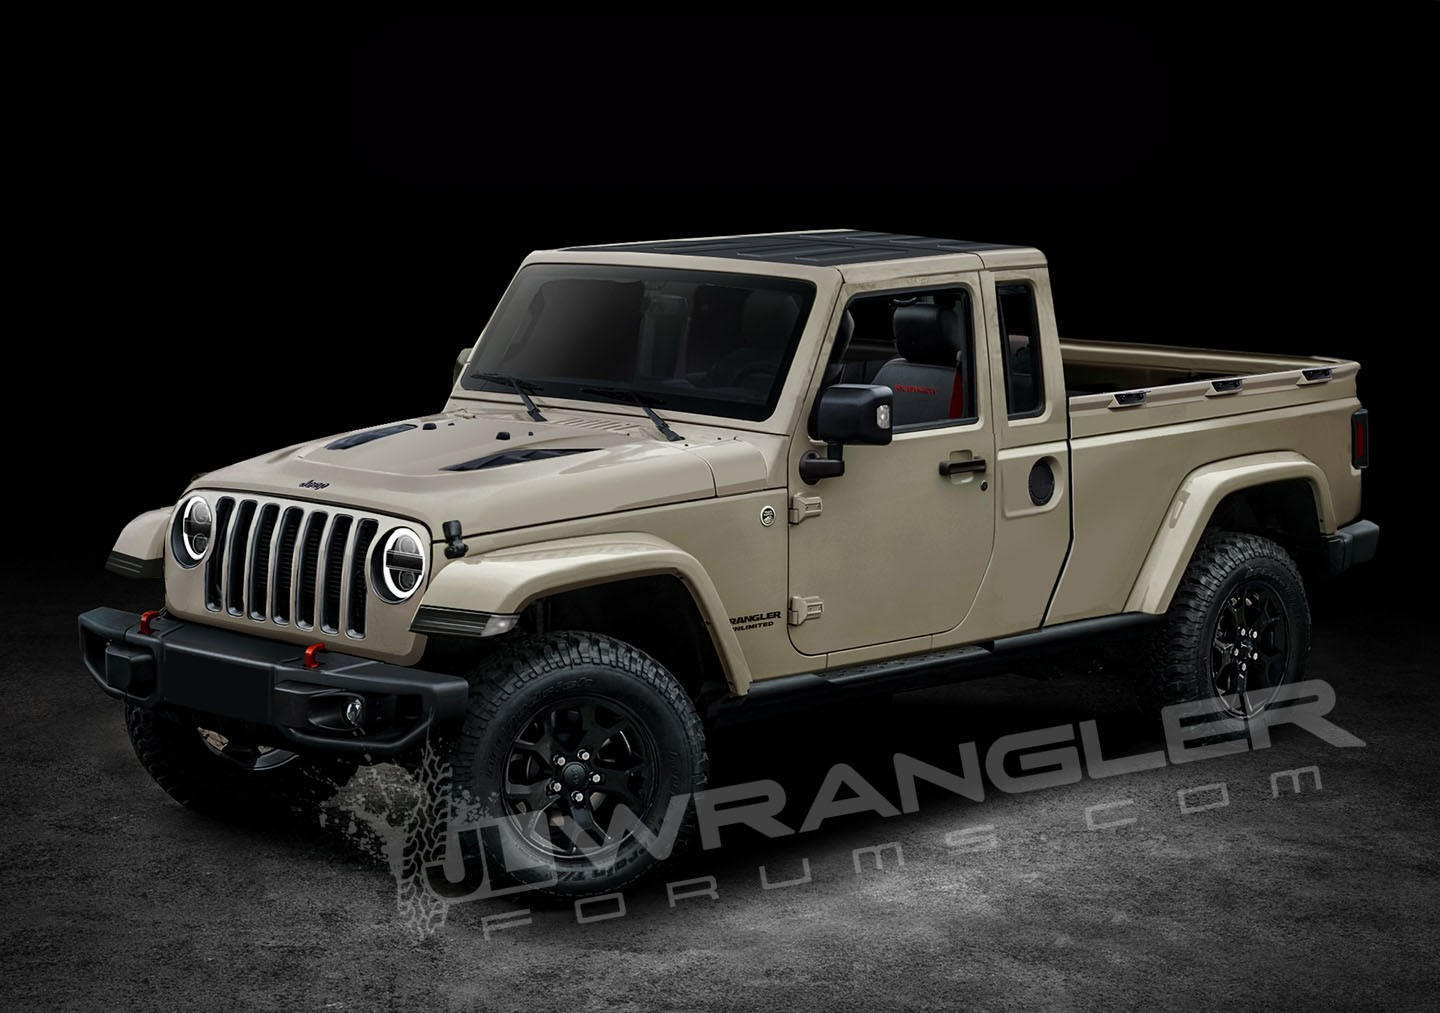 jeep wrangler pickup truck rendered based on spyshots two. Black Bedroom Furniture Sets. Home Design Ideas